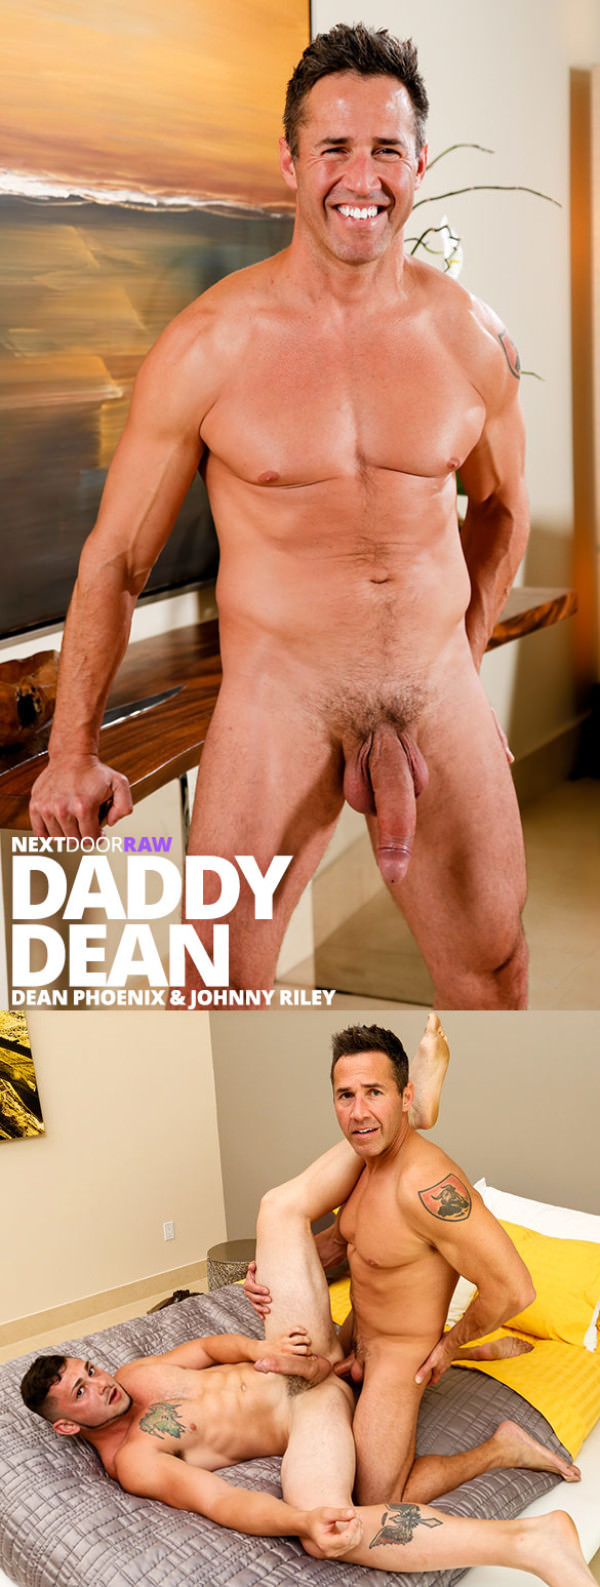 NextDoorRaw Daddy Dean - Dean Phoenix returns to porn, barebacks Johnny Riley